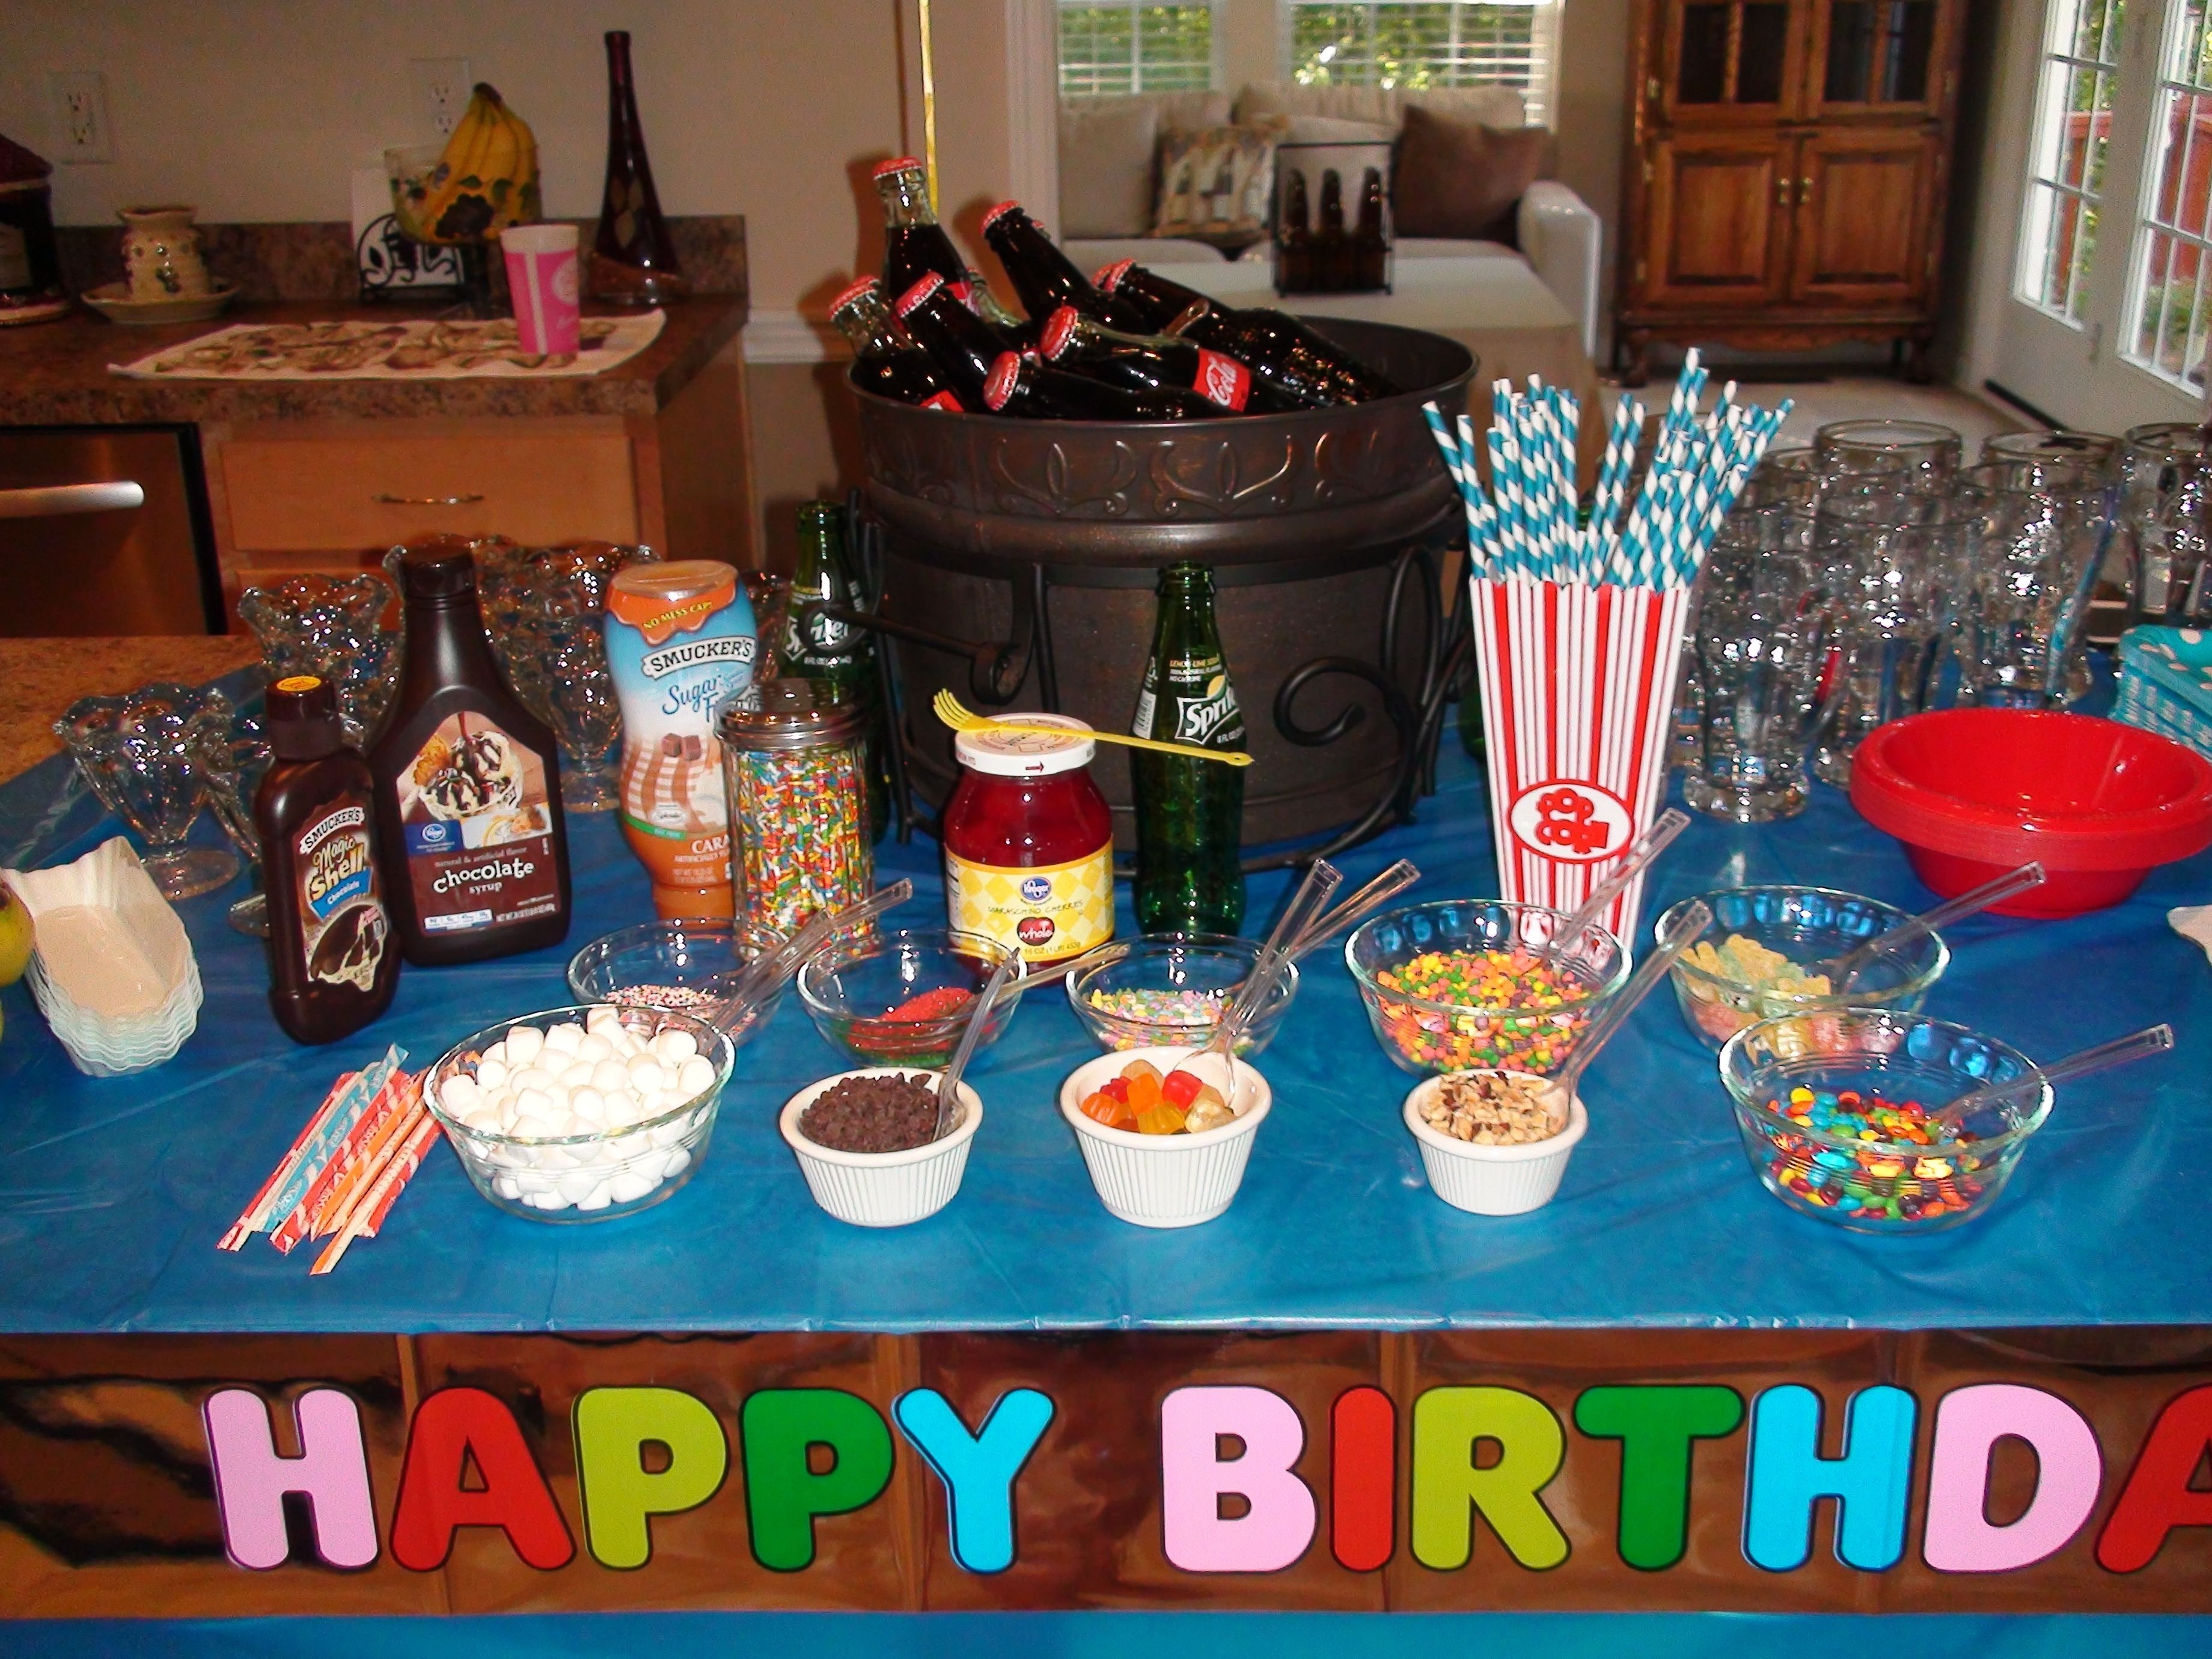 10 Fabulous 12 Year Old Birthday Party Ideas For Girls 12 year old party root beer floats banana splits ice cream with 24 2020